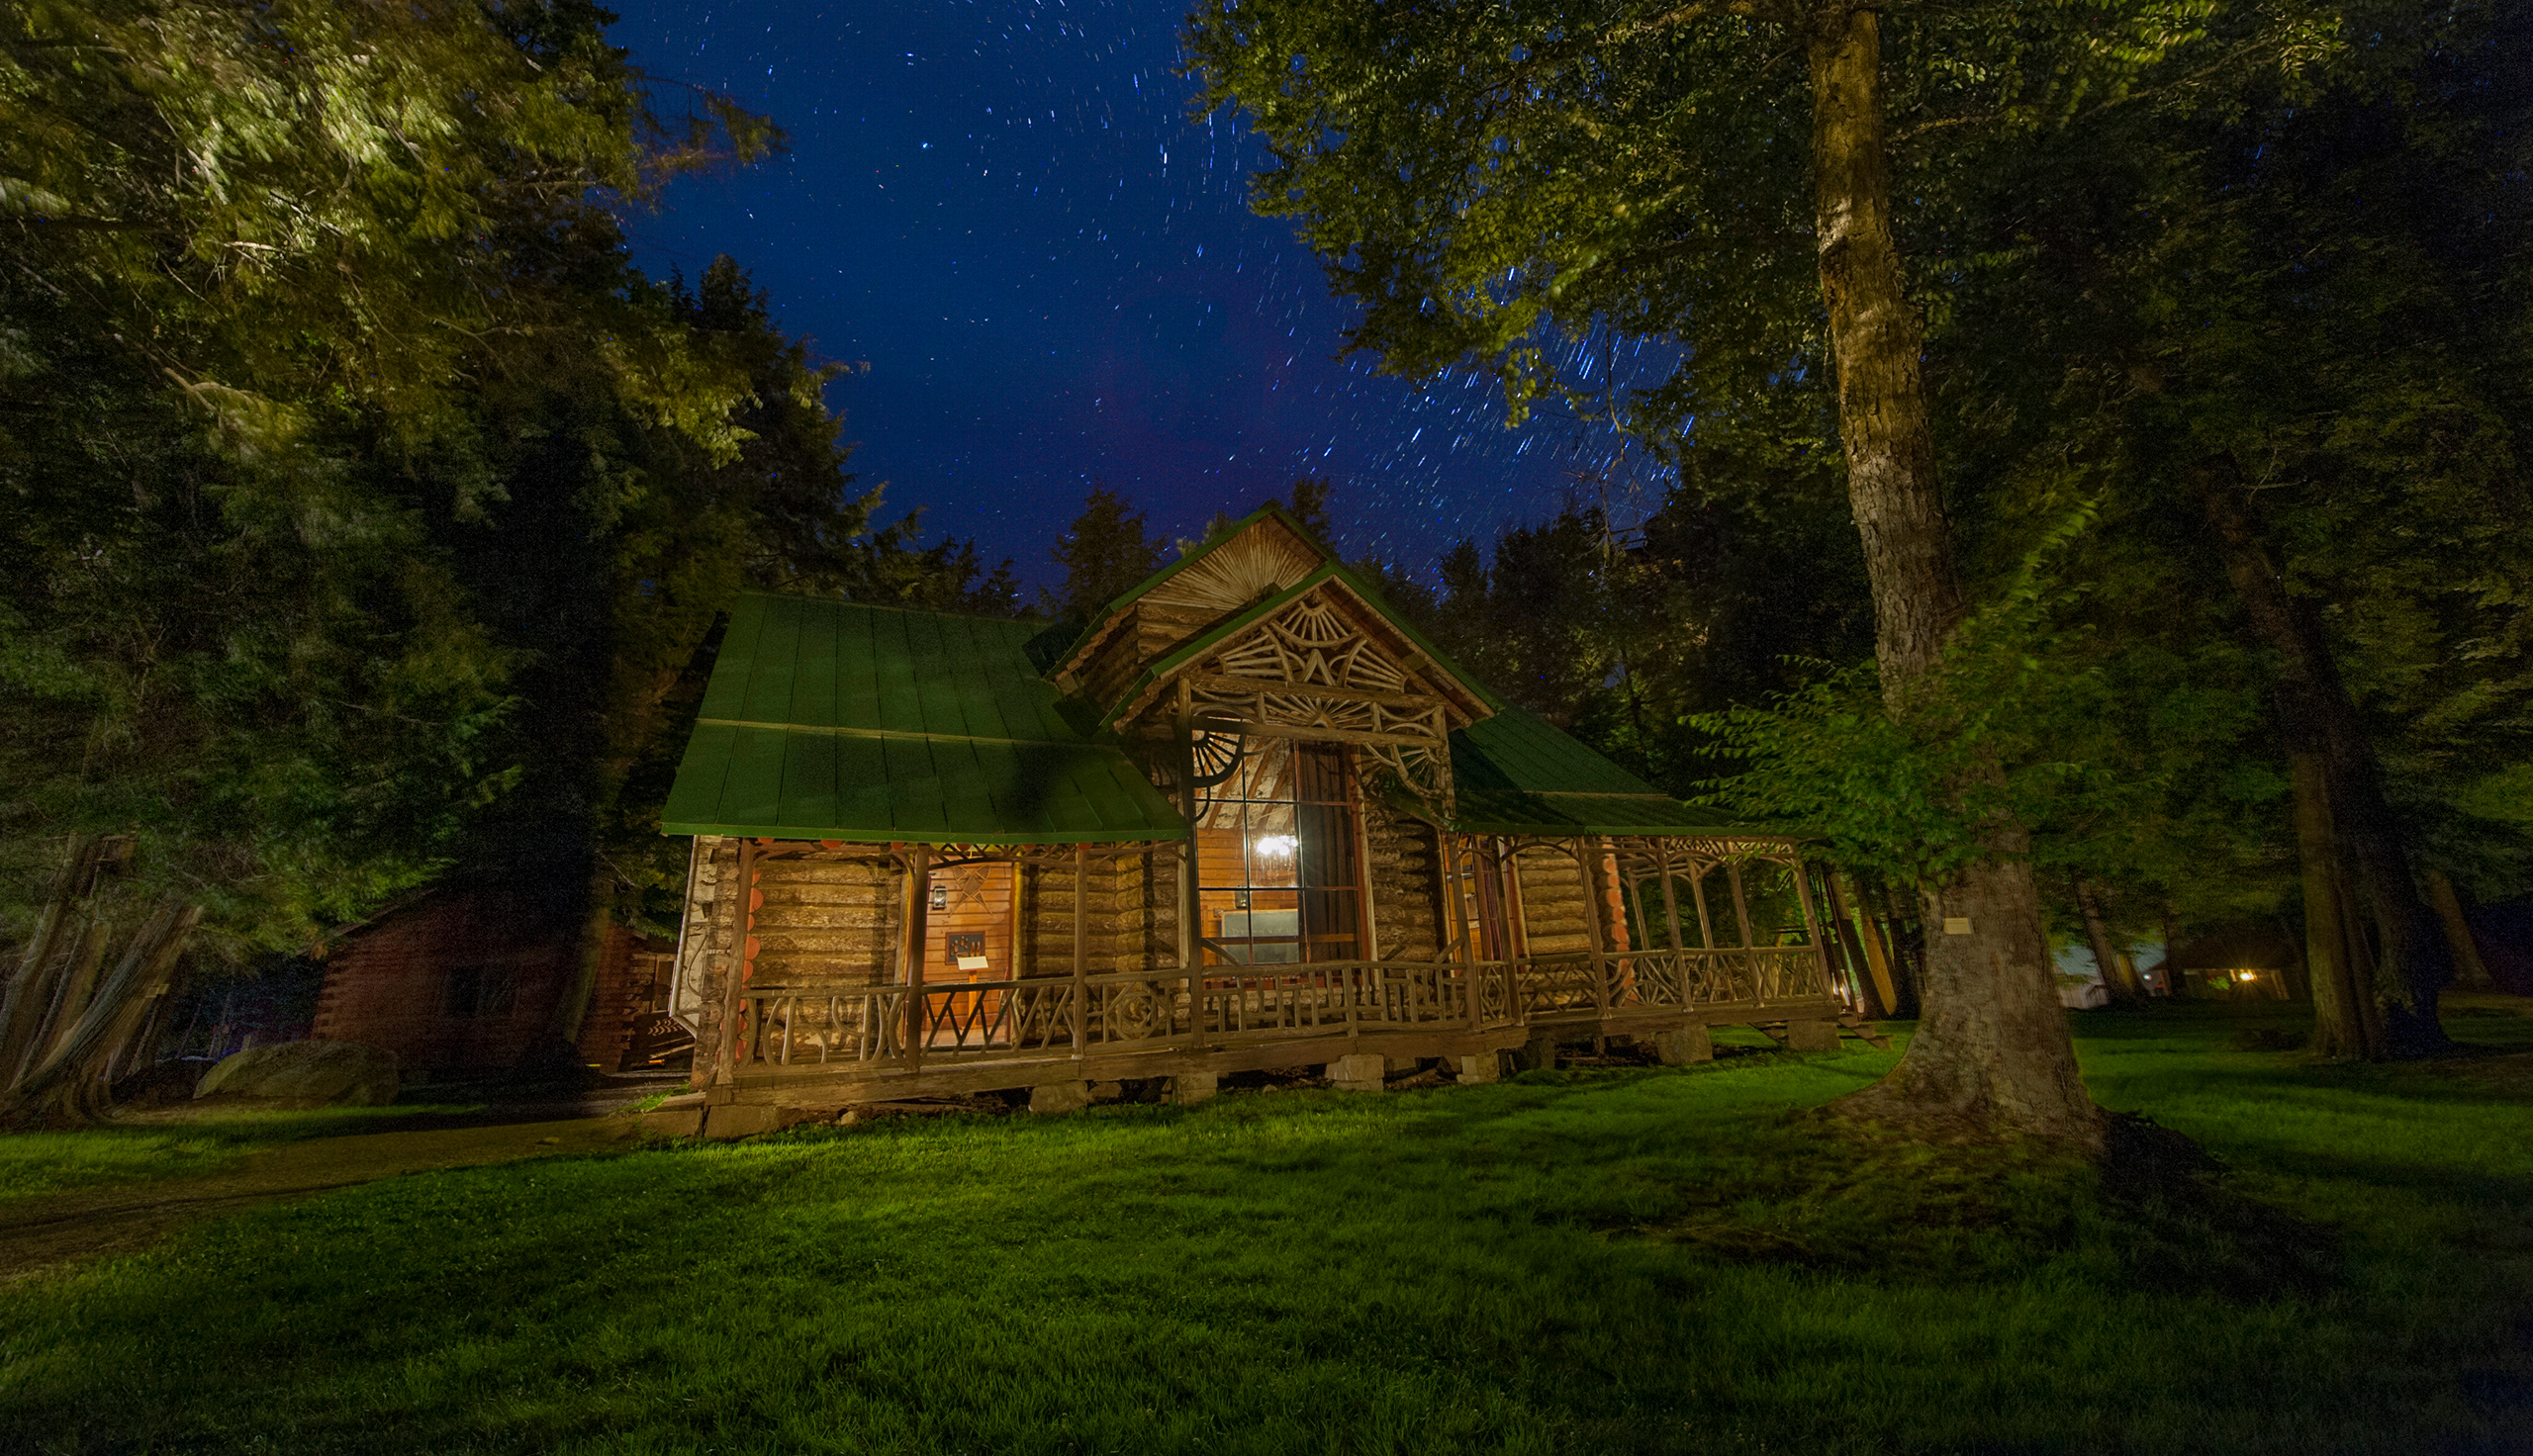 Seen here at night, Great Camp Pine Knot became William West Durant's most enduring legacy